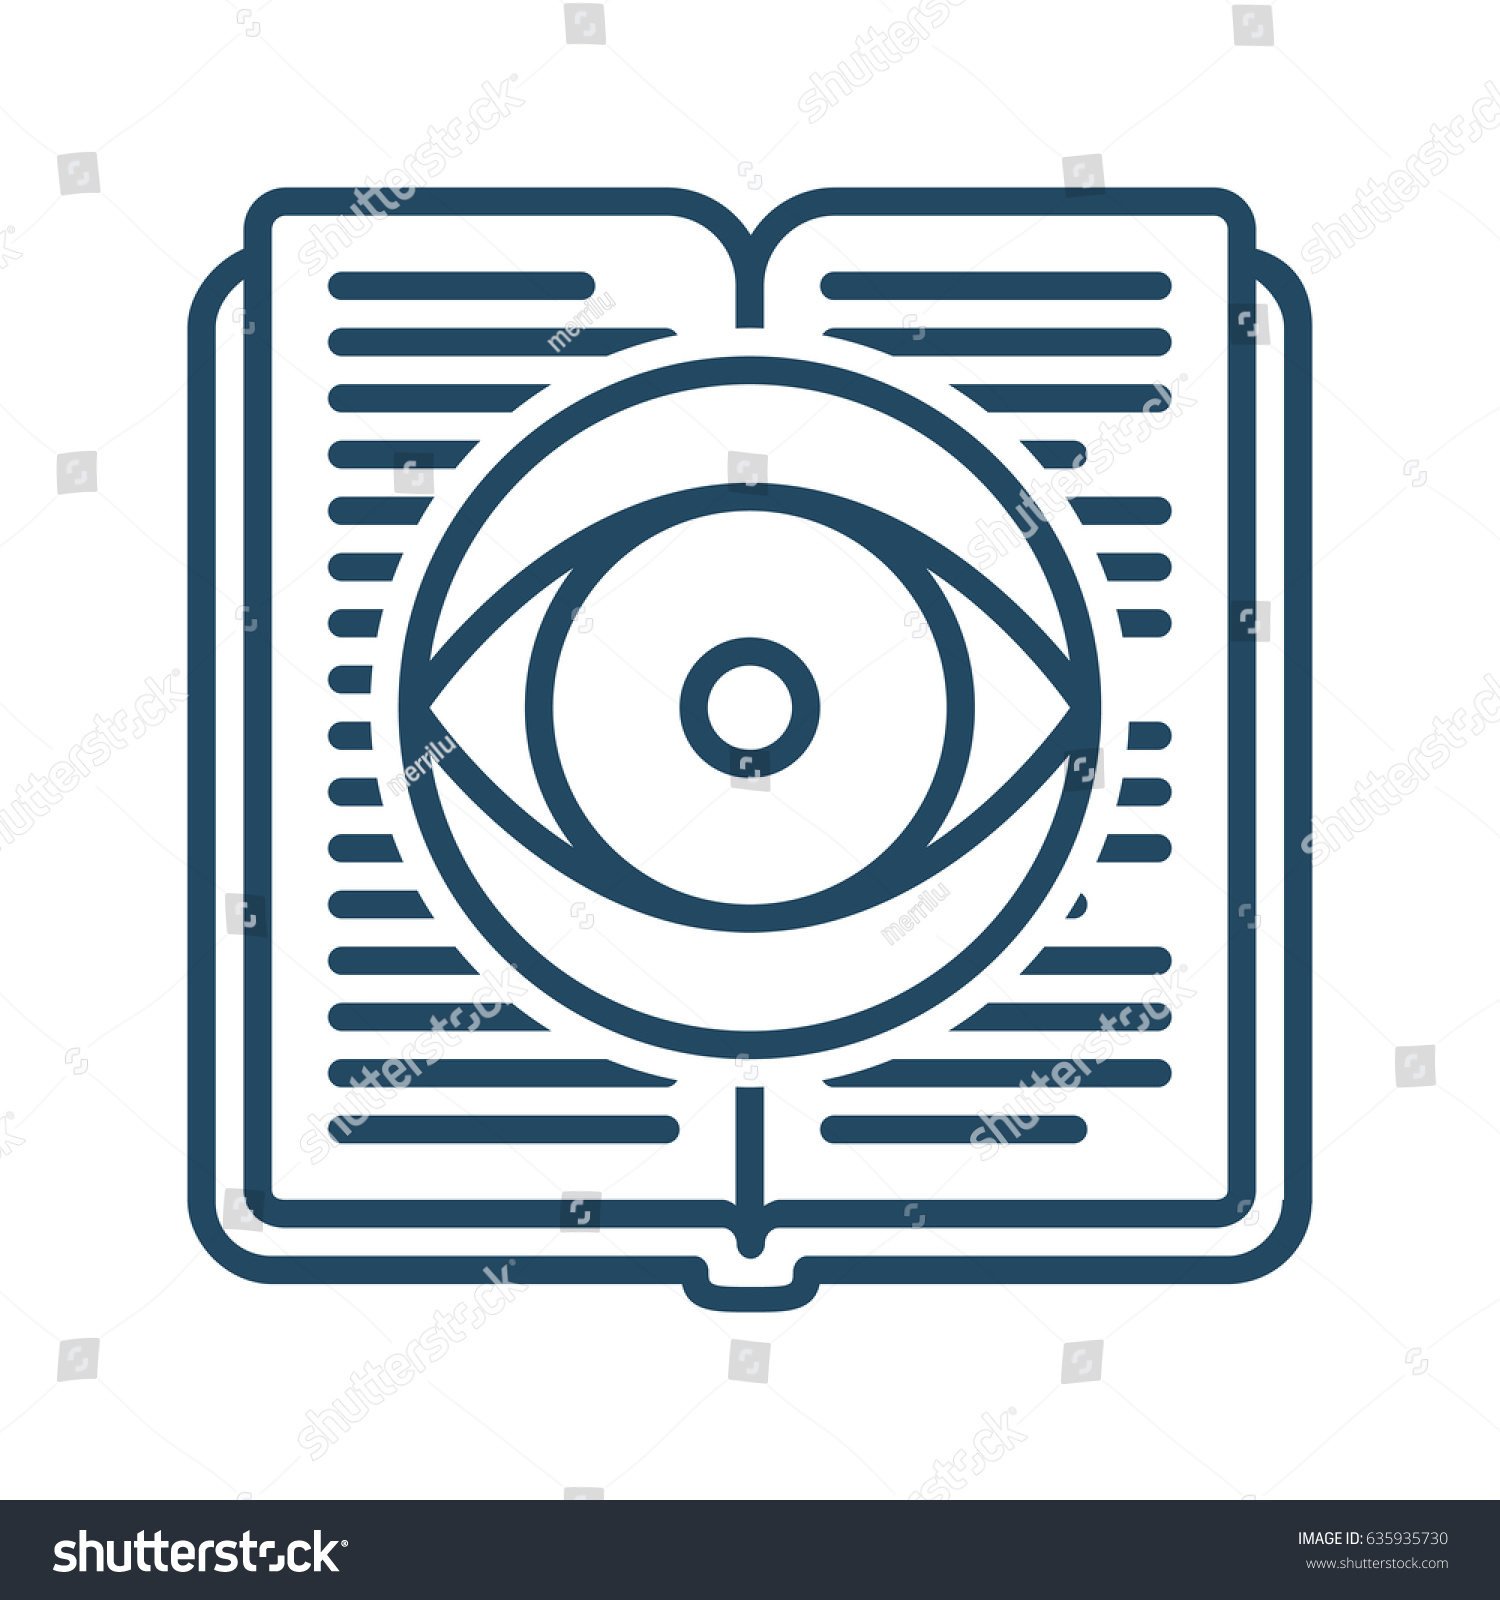 Eye inside book vector icon meaning stock vector 635935730 eye inside book vector icon in meaning knowledge biocorpaavc Images